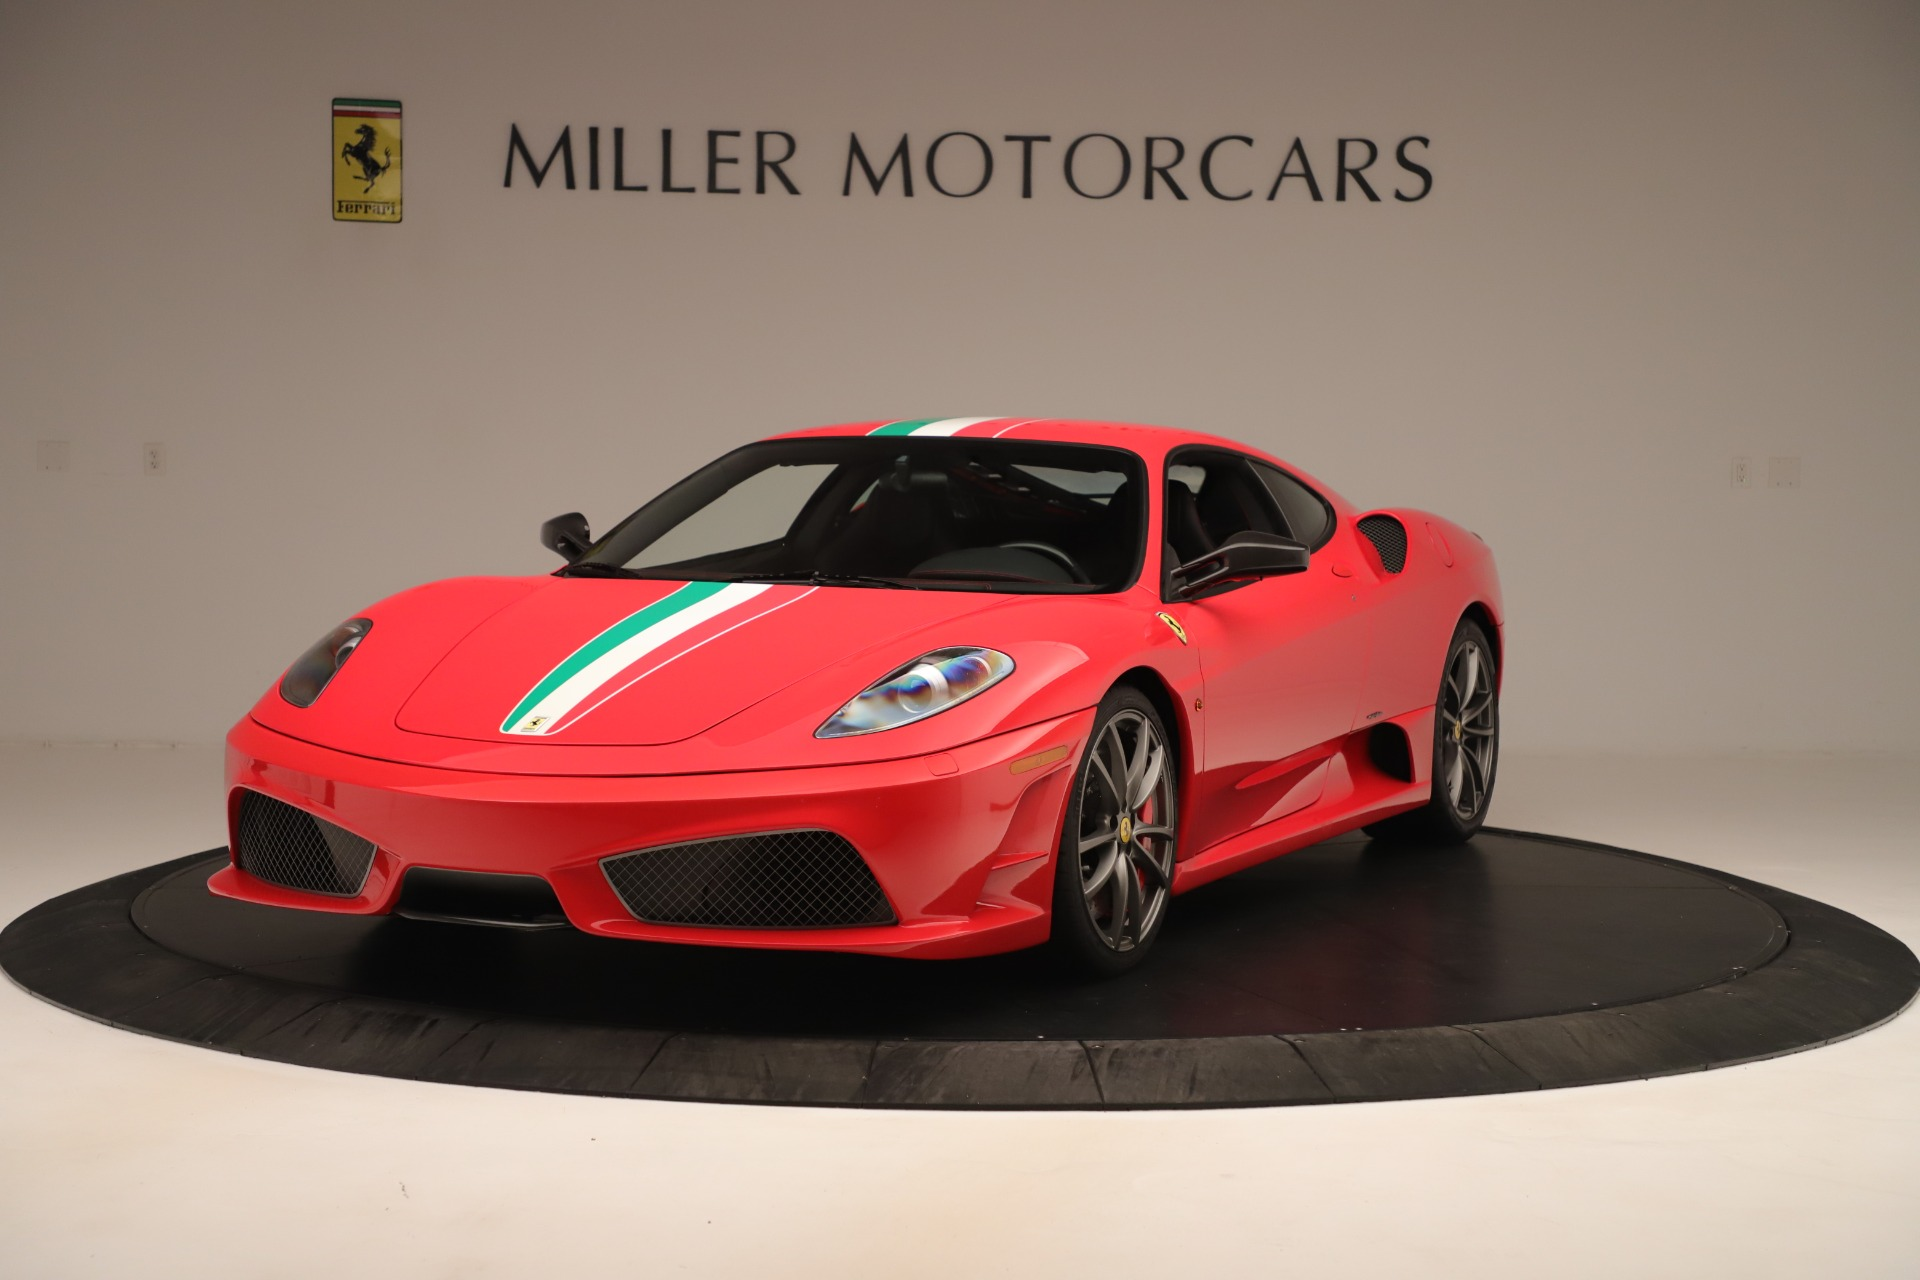 Used 2008 Ferrari F430 Scuderia For Sale In Greenwich, CT. Alfa Romeo of Greenwich, 4599 3381_main